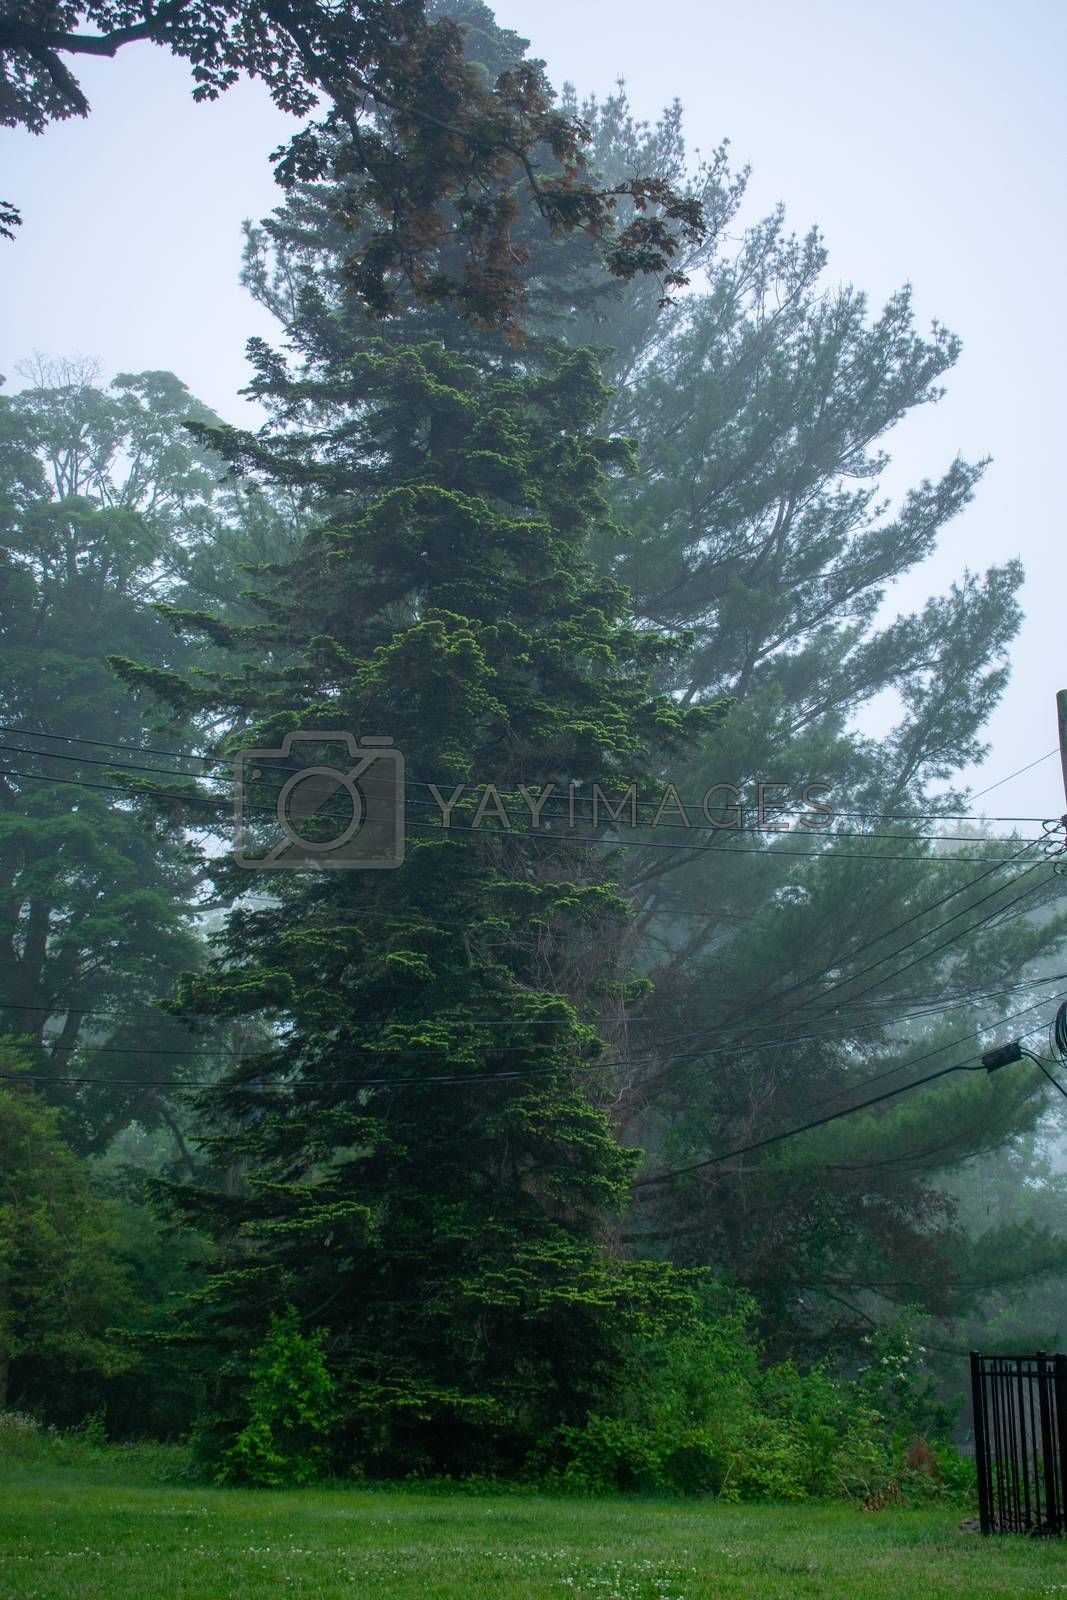 A Tall Green Tree on a Foggy Day in a Spring Suburban Backyard